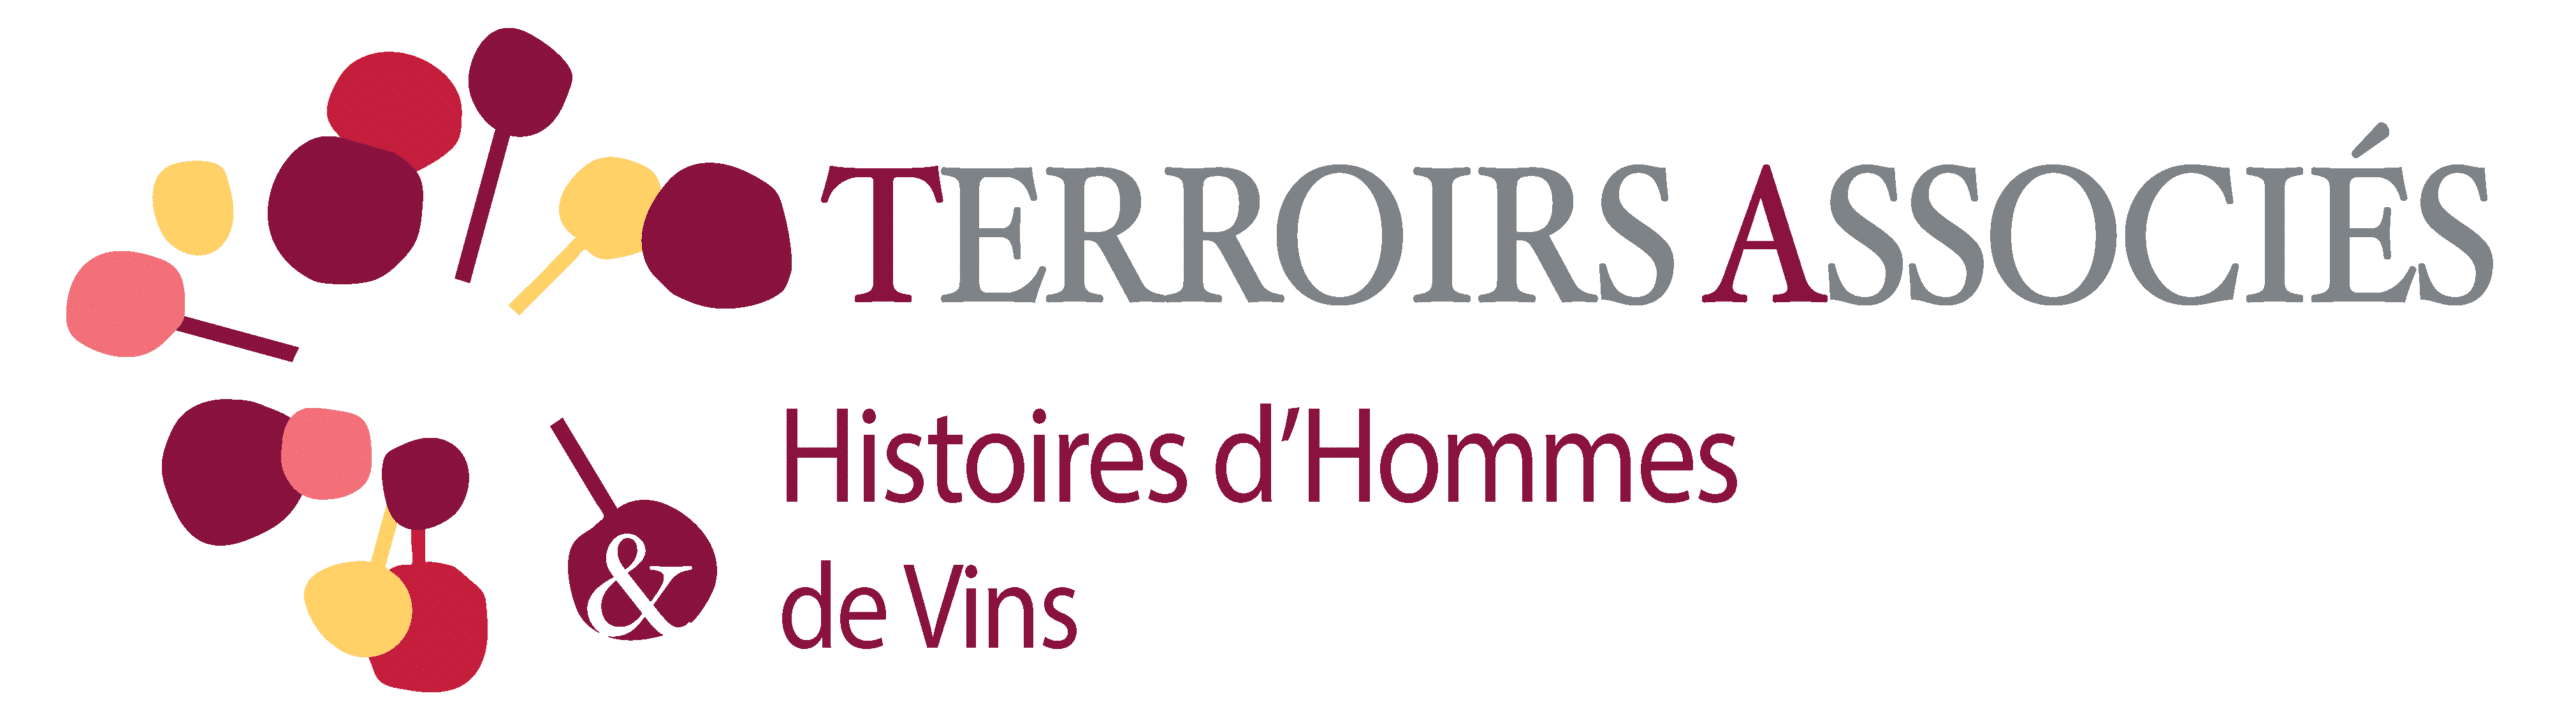 TERROIRS ASSOCIES